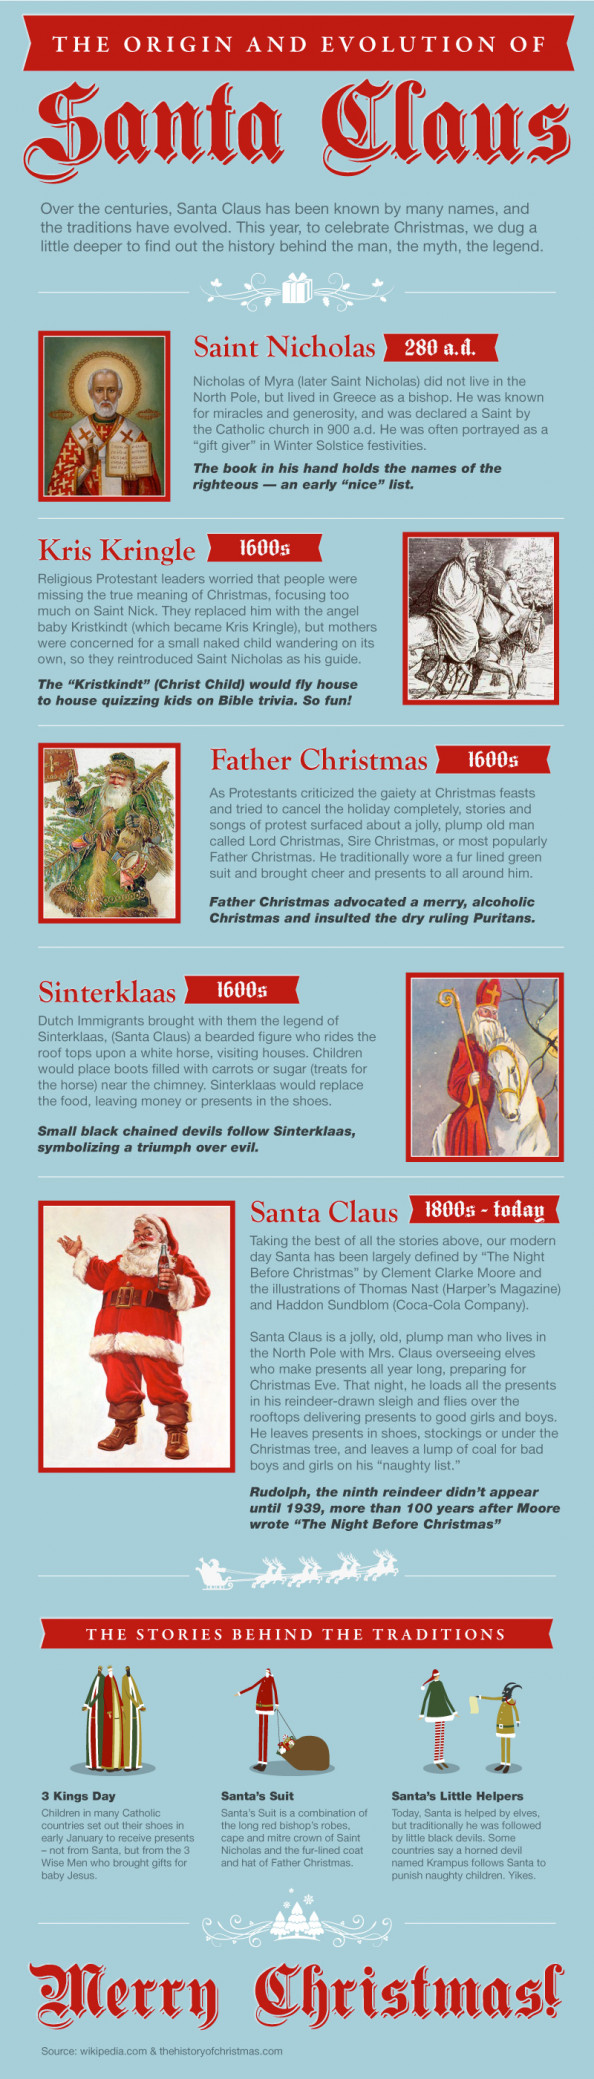 The Origin and Evolution of Santa Claus Infographic